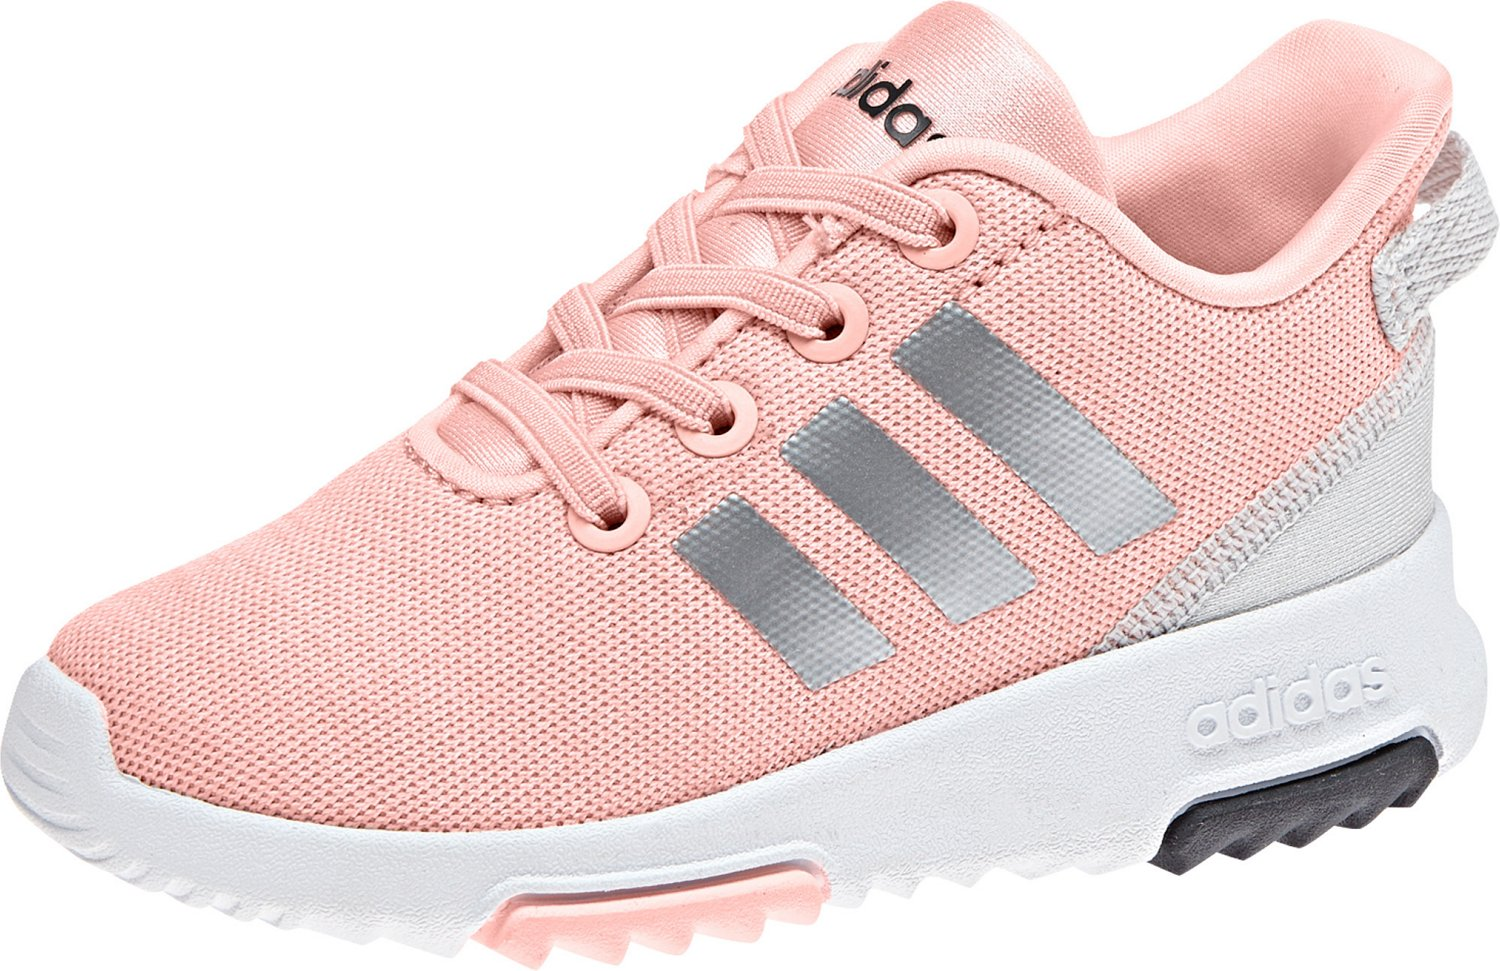 adidas Toddler Girls' Racer TR Running Shoes - view number 1